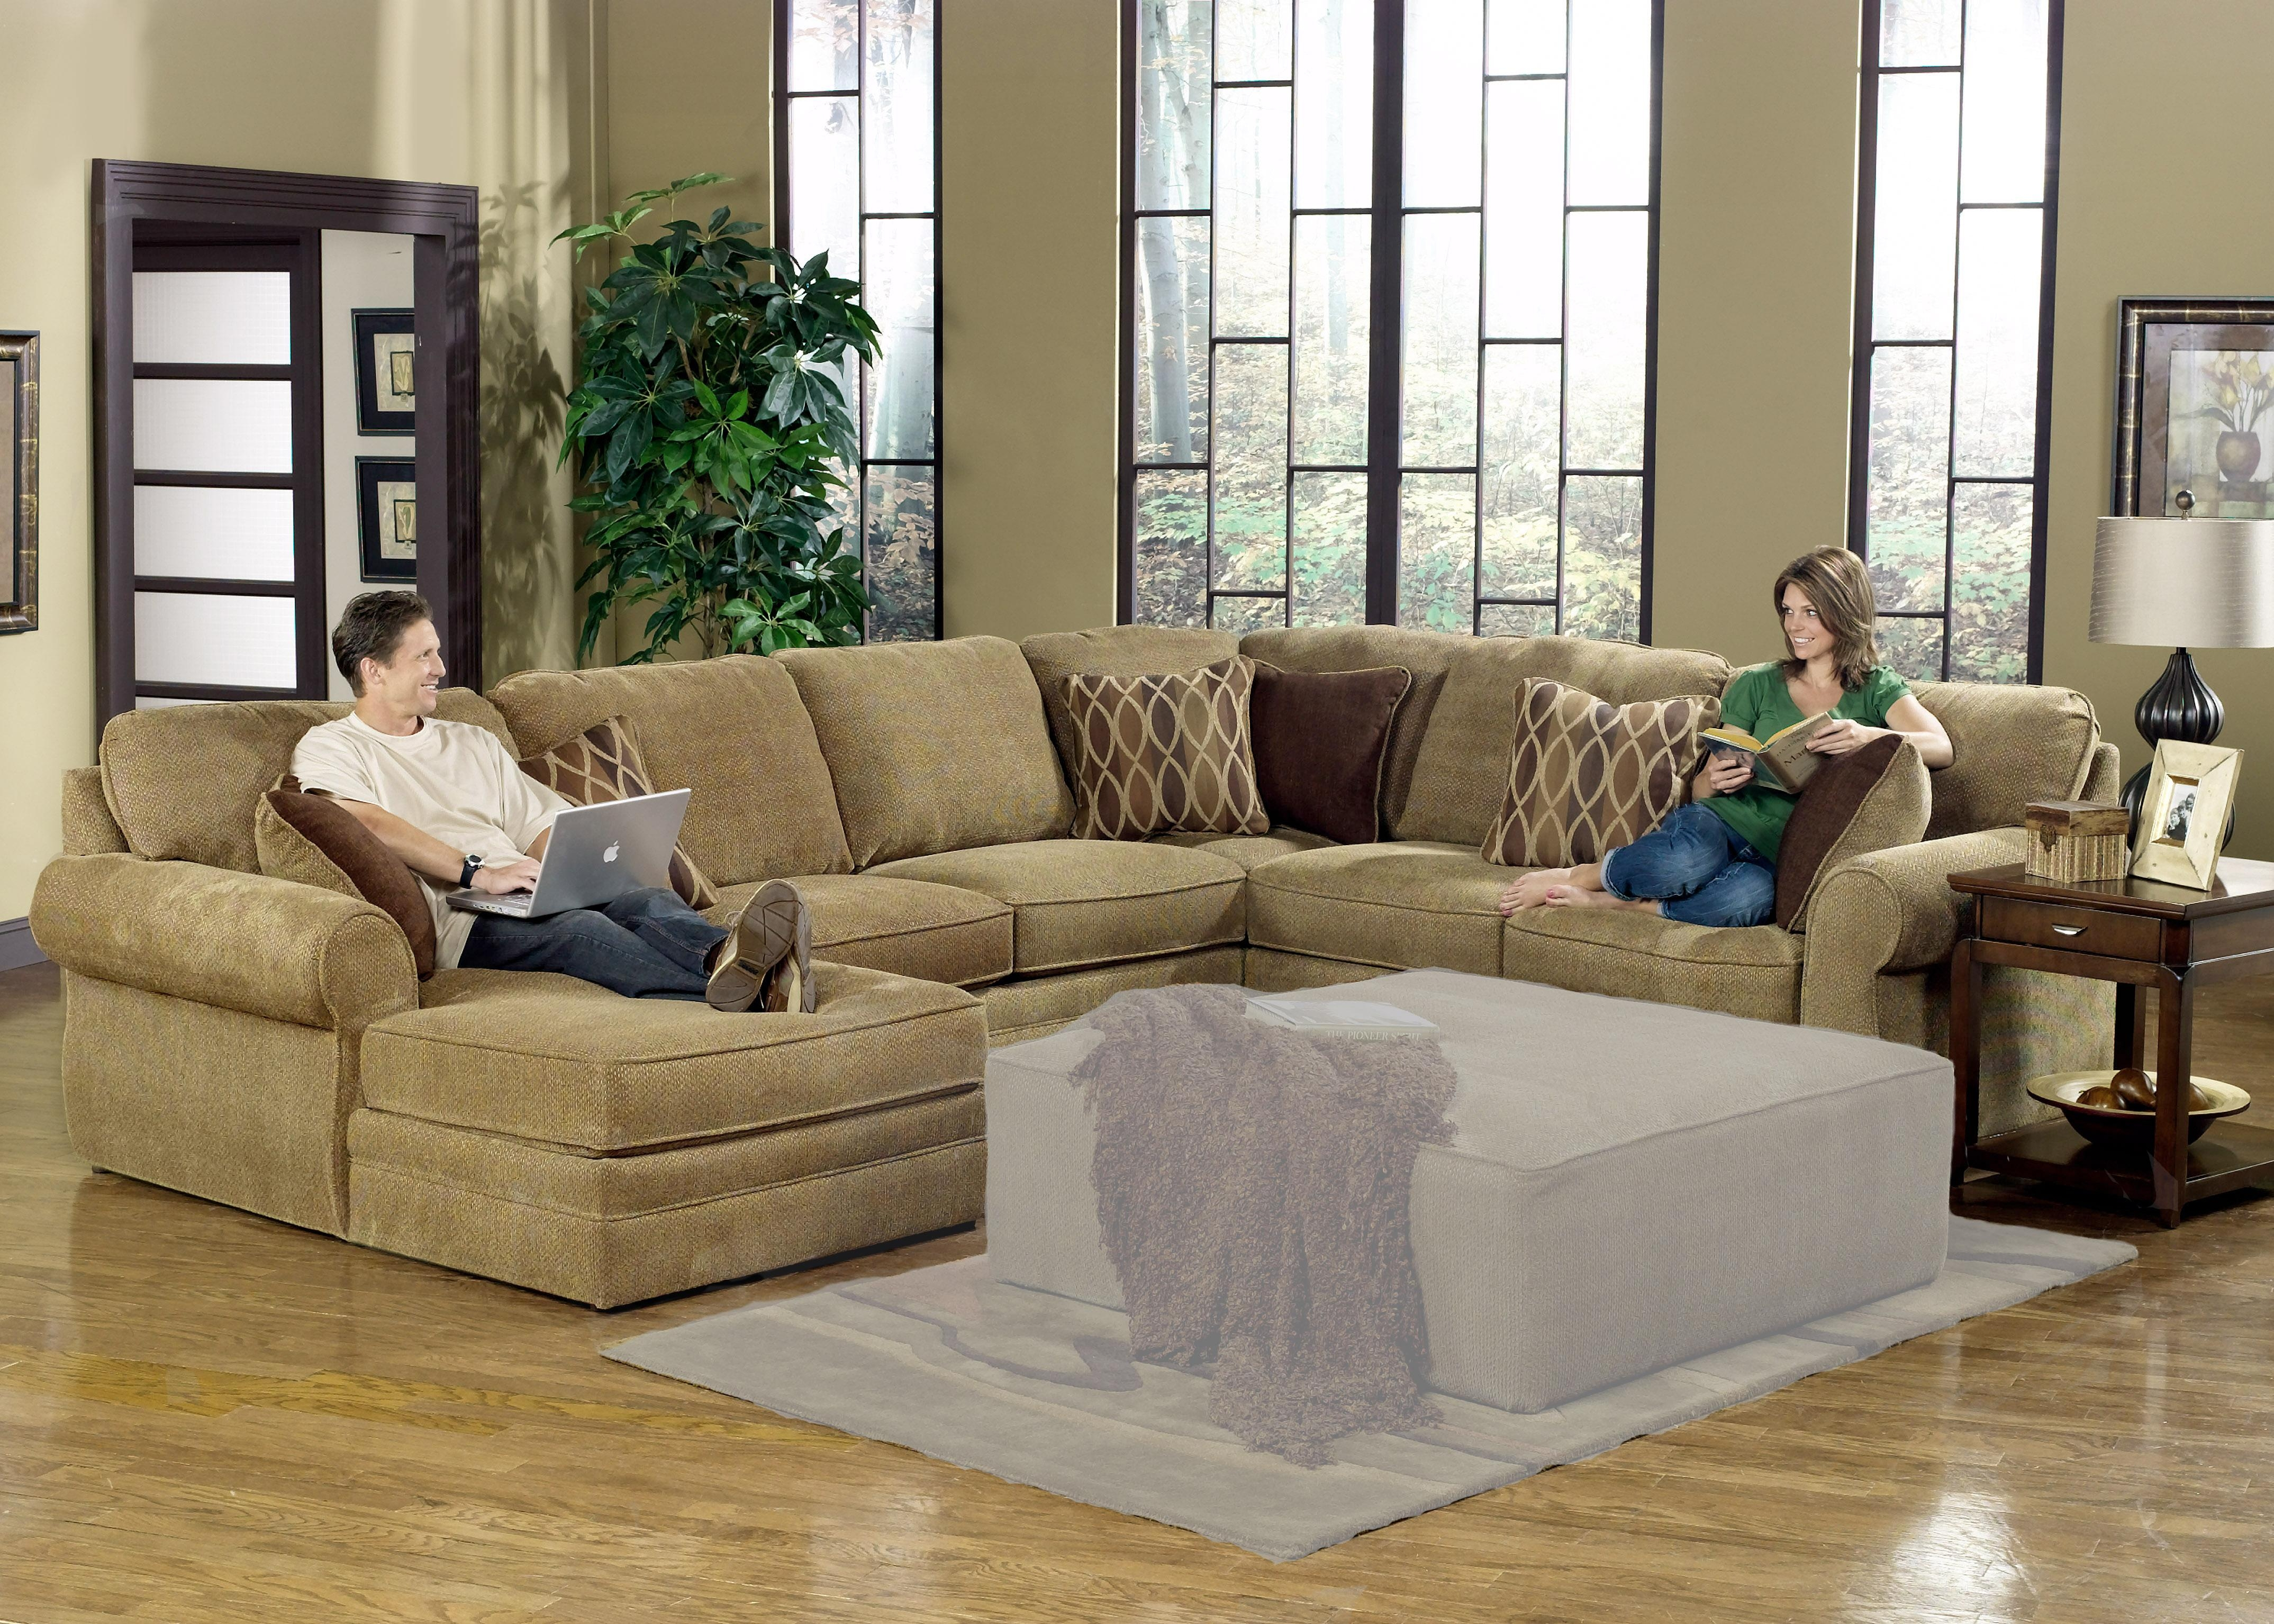 Pit Sectional Couches furniture: lazy boy sofas | large sectional sofas | couch sectional